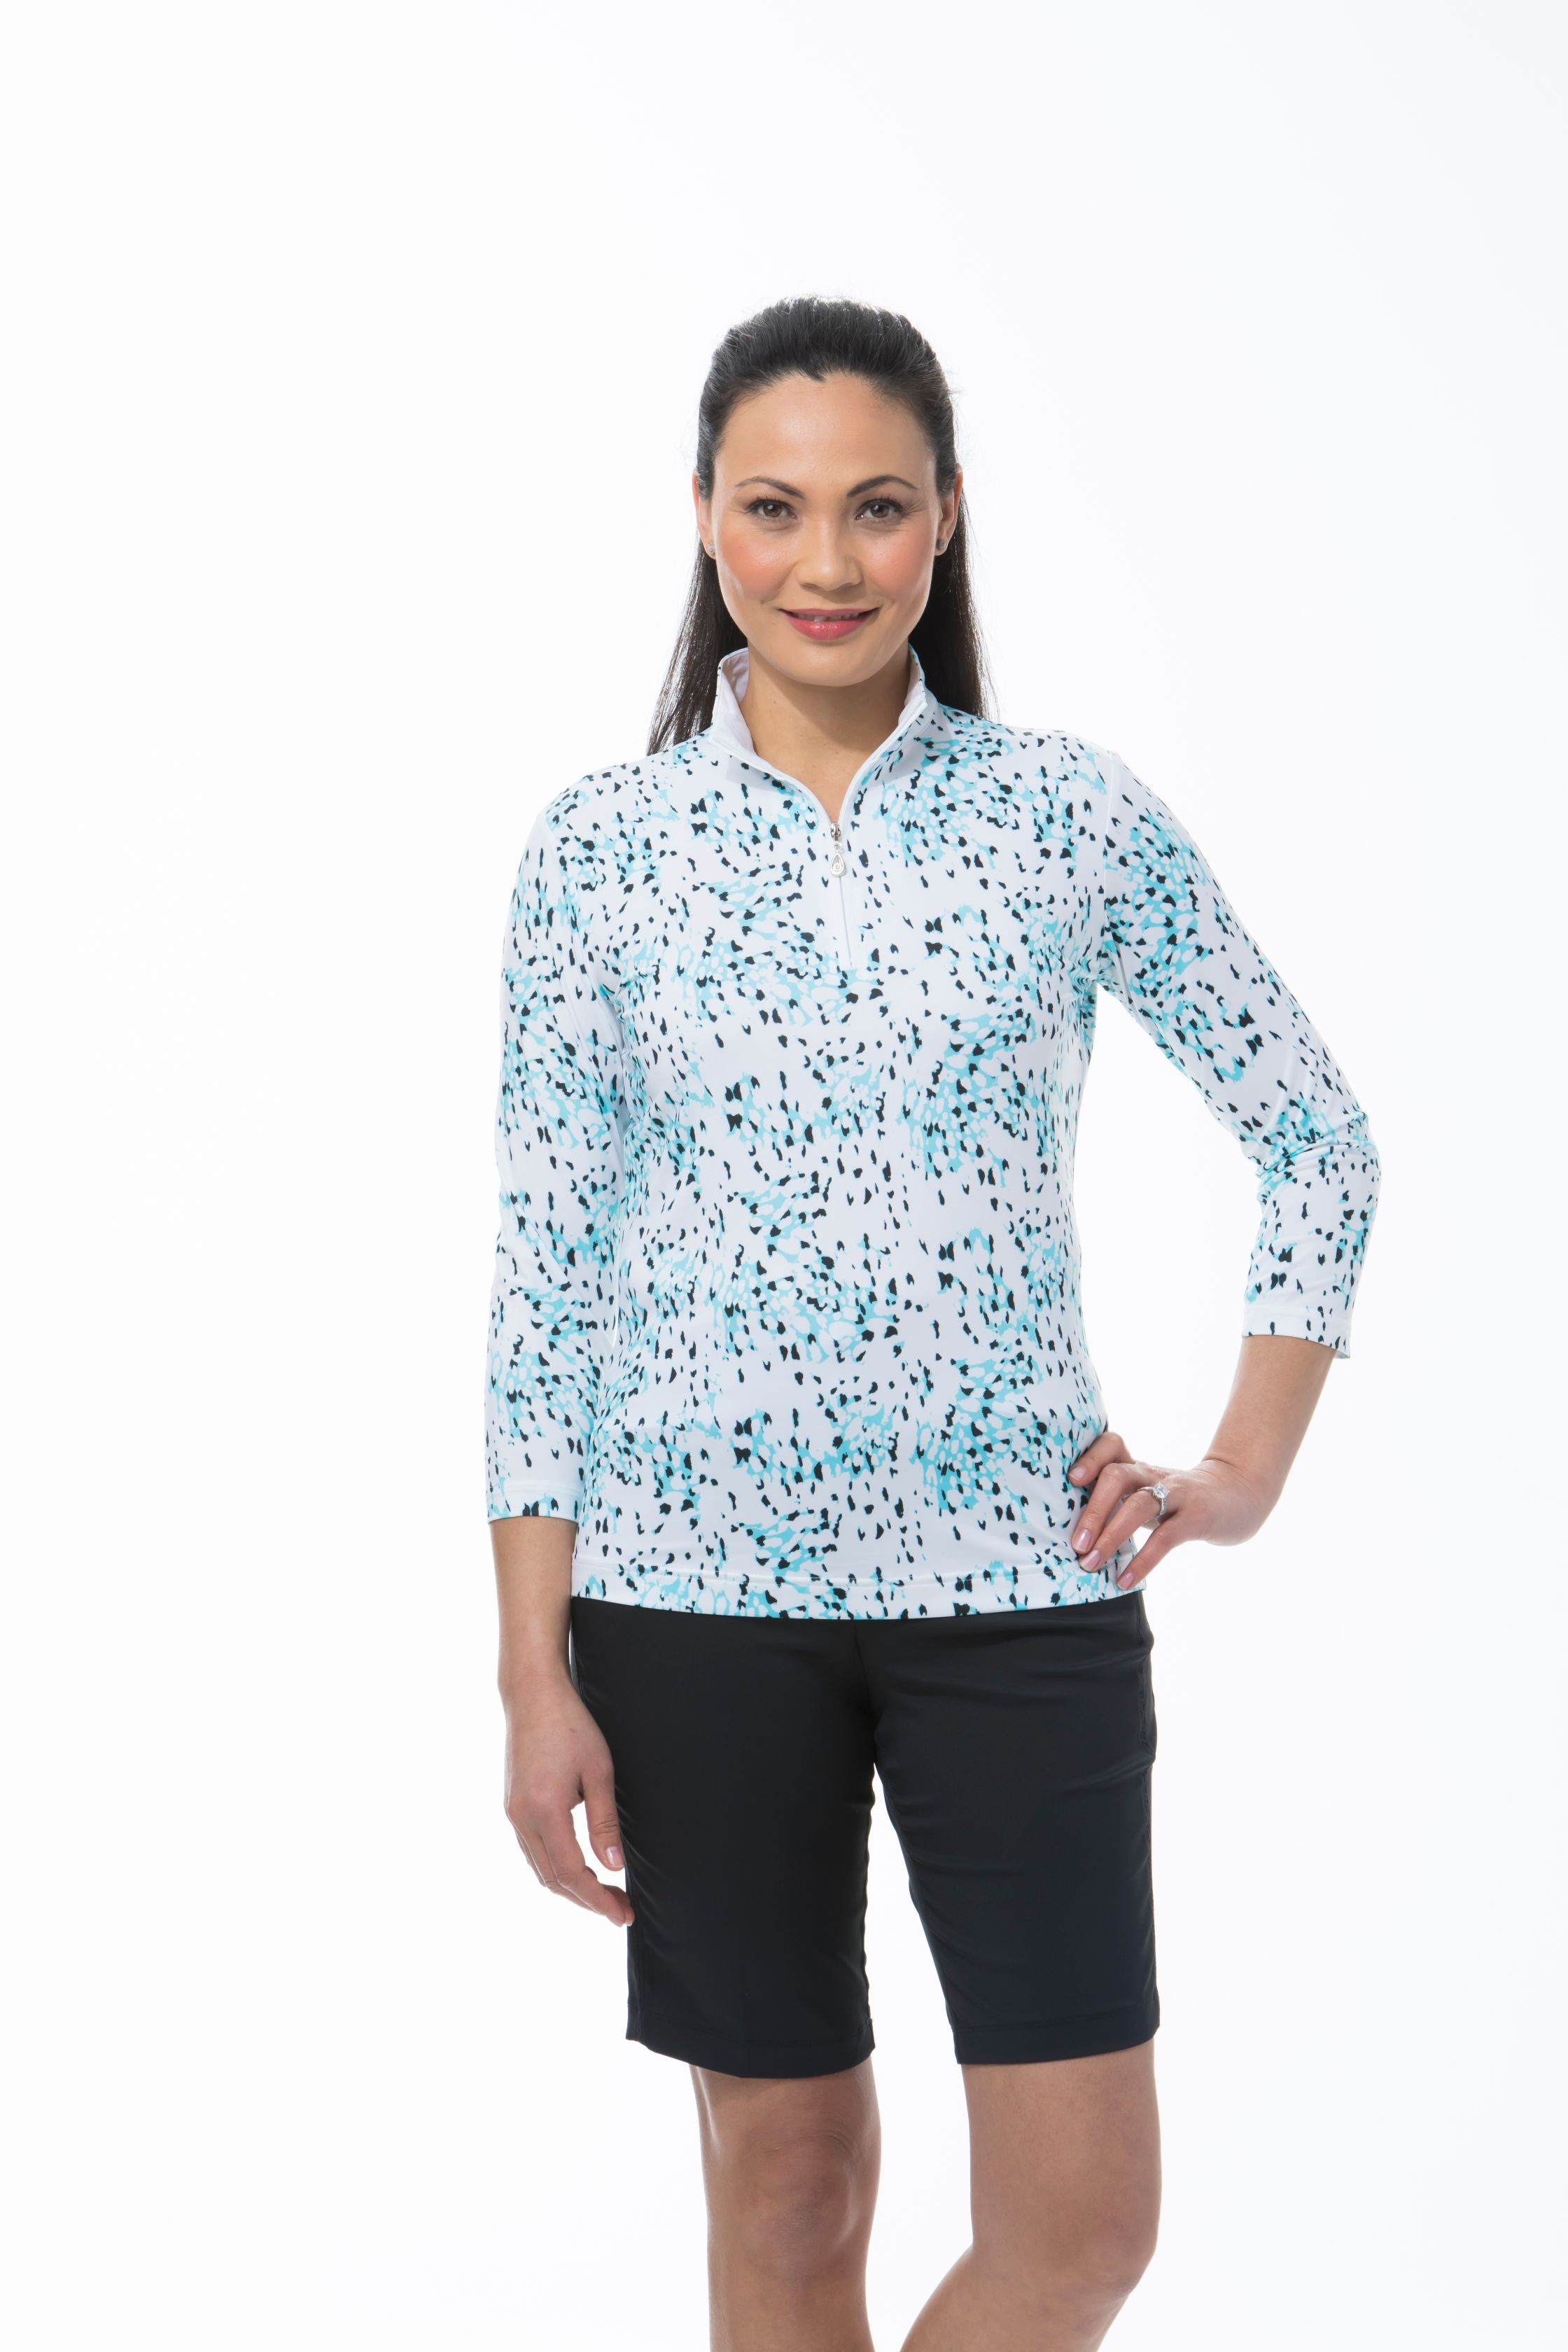 900476 SOLCOOL 3/4 SLEEVE PRINT MOCK - Snow Leopard. Capri Blue